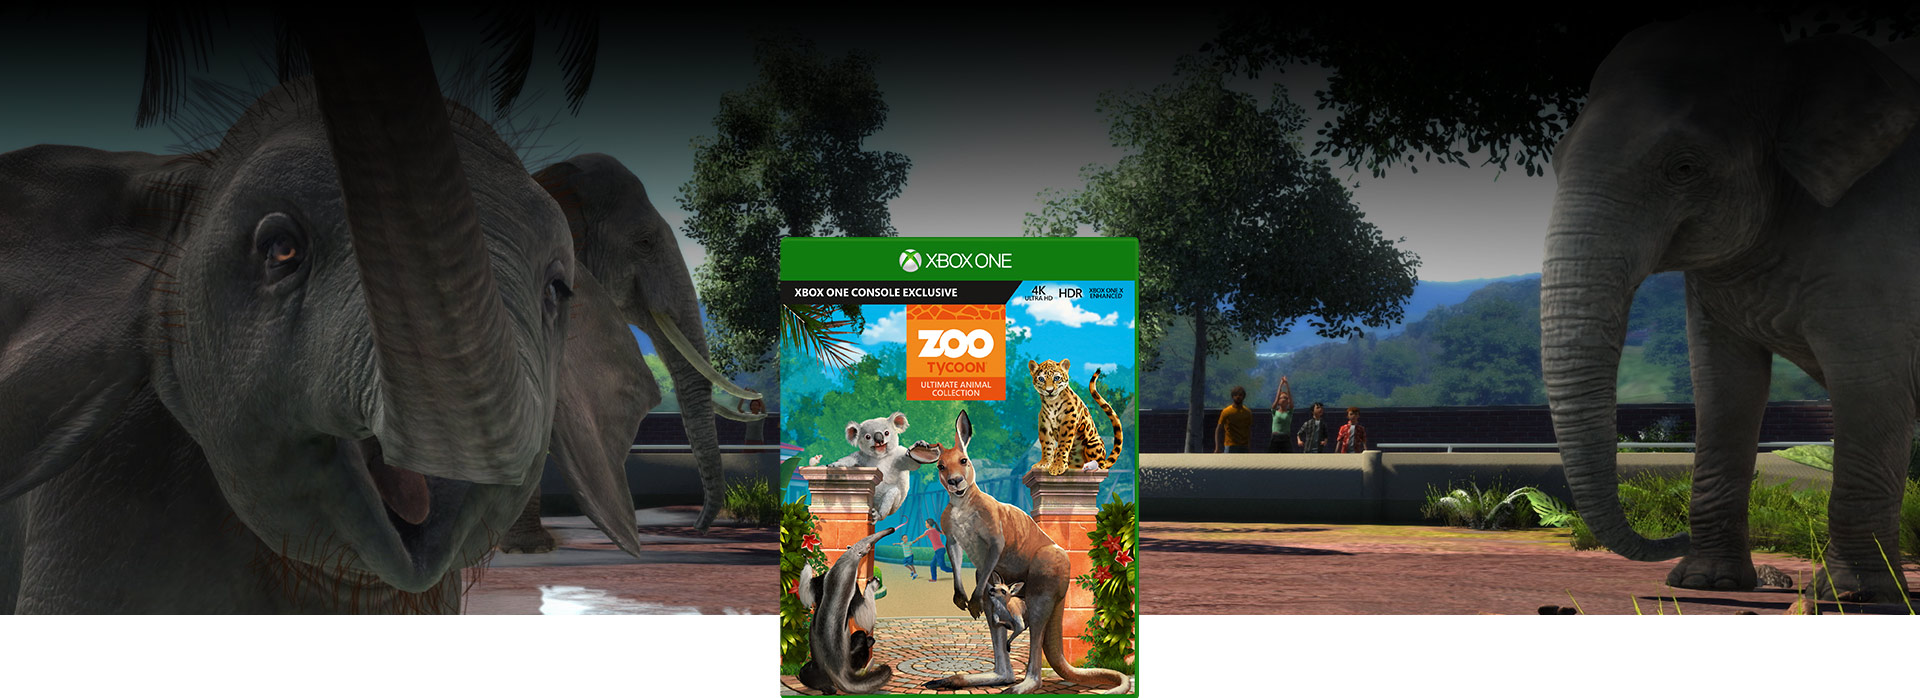 Zoo Tycoon-coverbillede